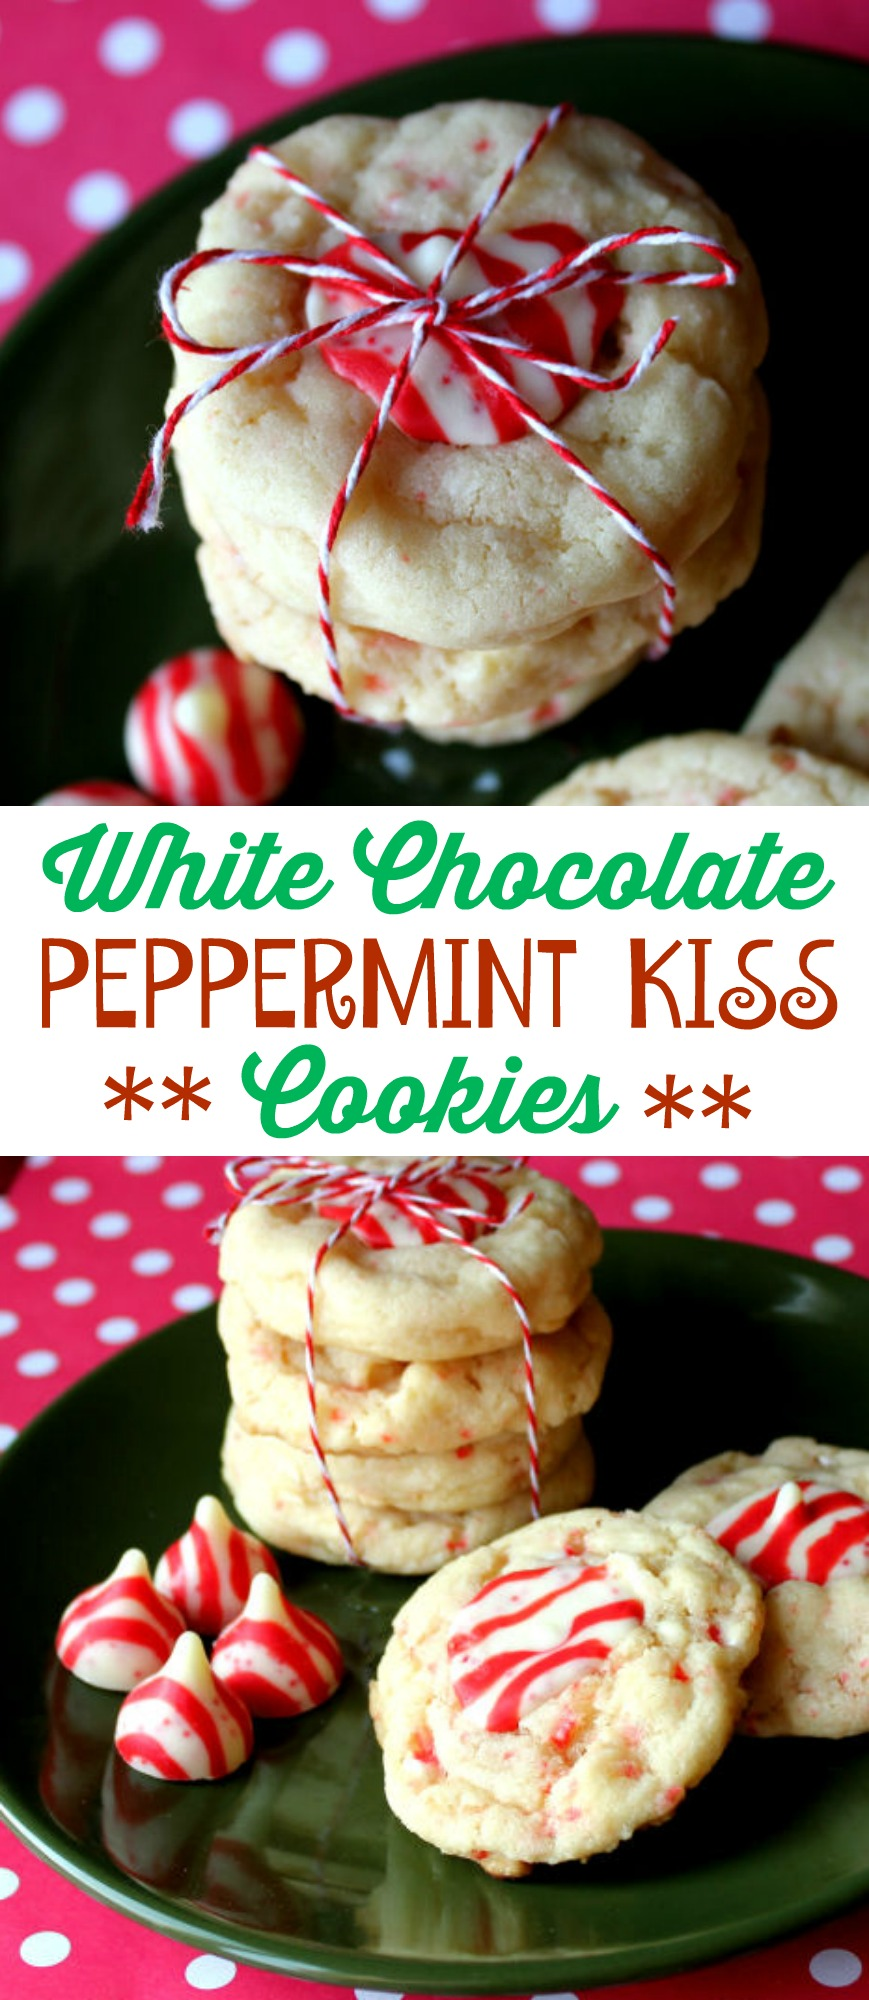 White Chocolate Peppermint Kiss Cookies Jamie Cooks It Up Family